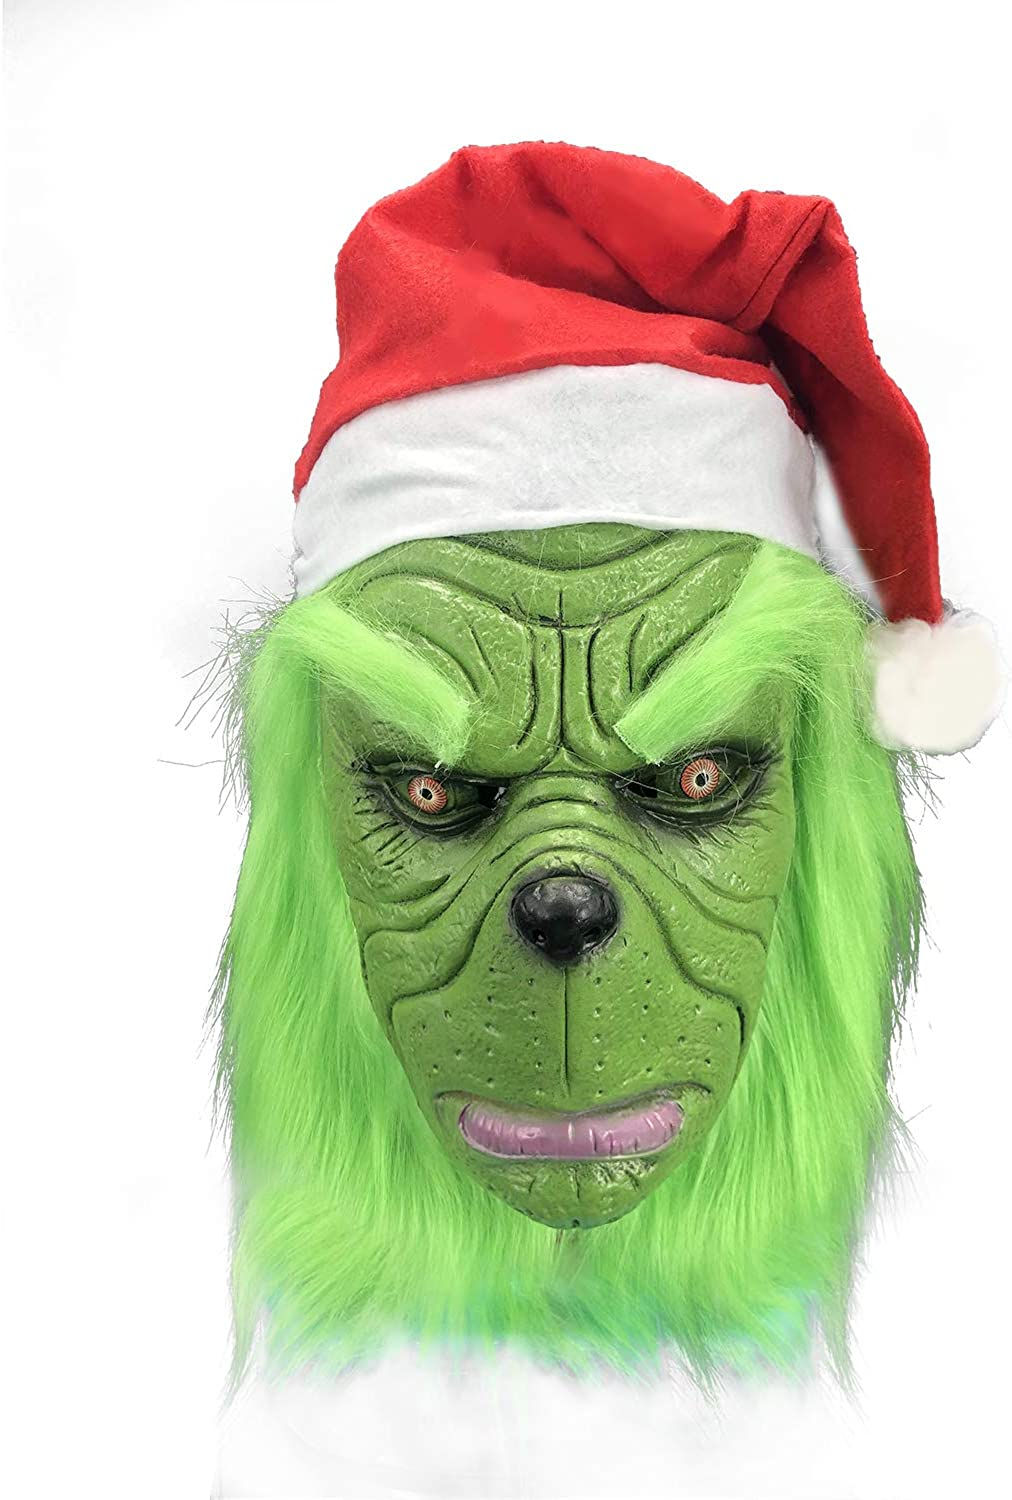 Christmas Geek Mask,Green Monster Grinch Latex Mask, Deluxe Latex Party Funny,Carnival,Christmas Ornaments Green.